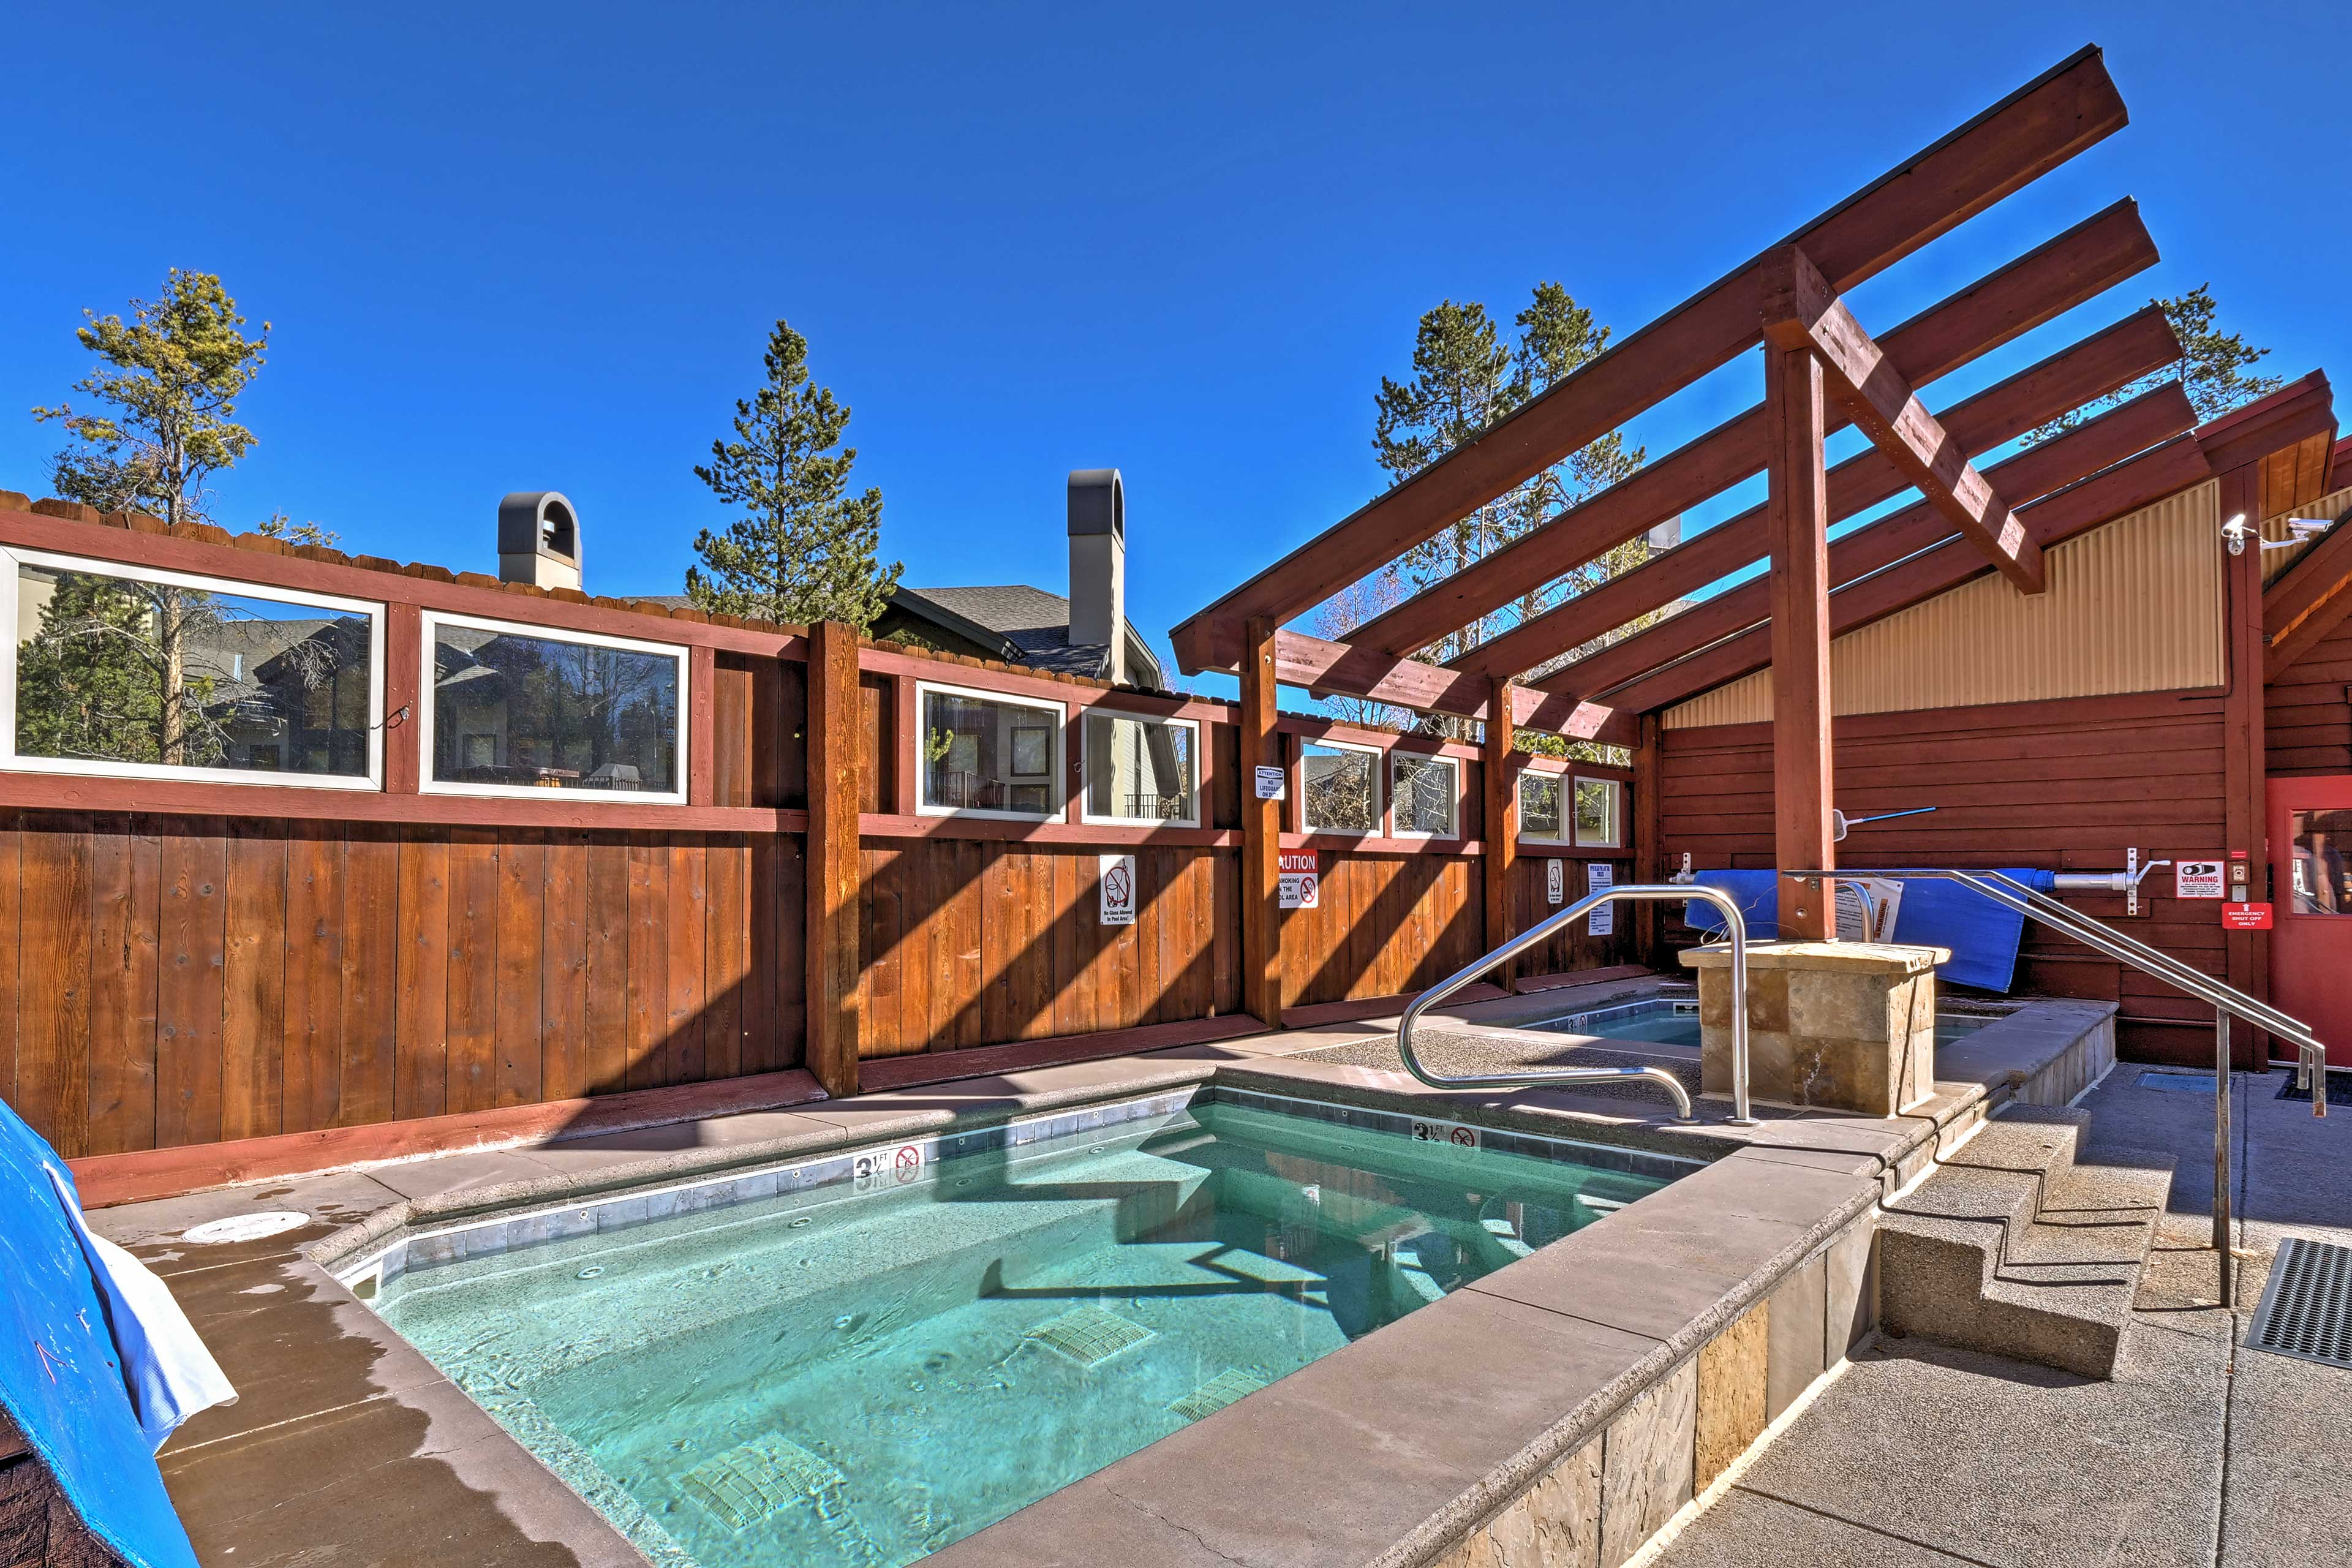 The community features outdoor and indoor pools and hot tubs.